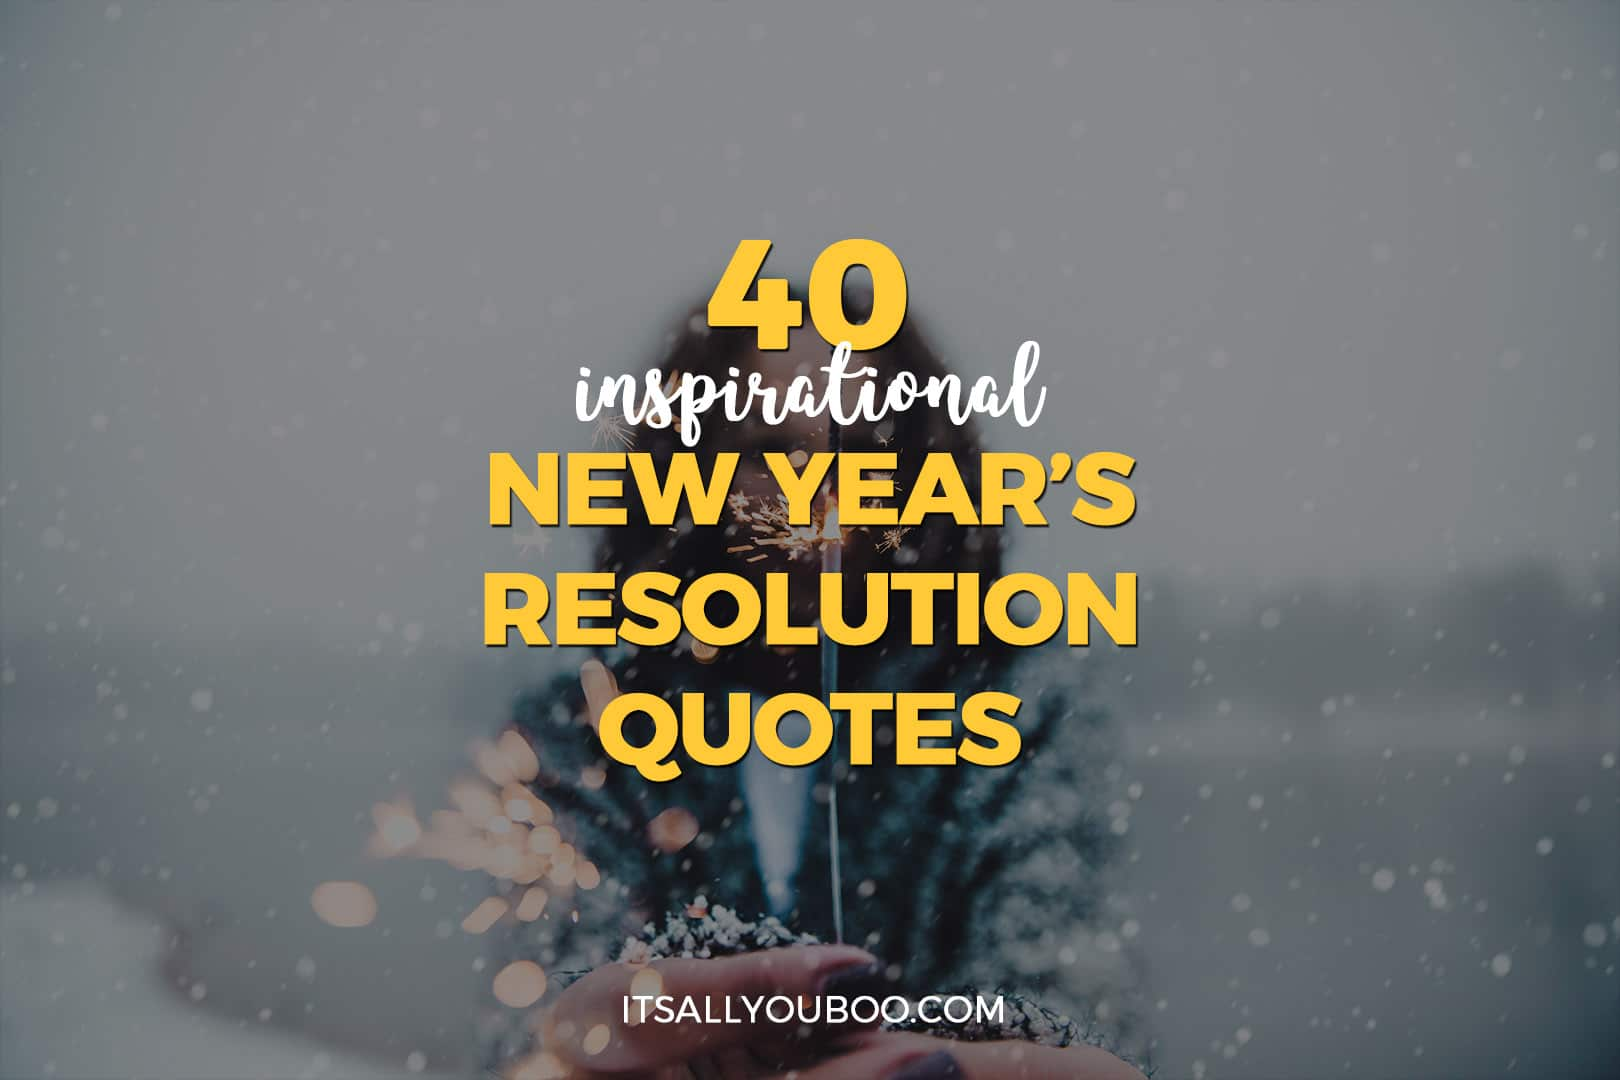 Inspirational Phrases 40 Inspirational New Year's Resolution Quotes  It's All You Boo